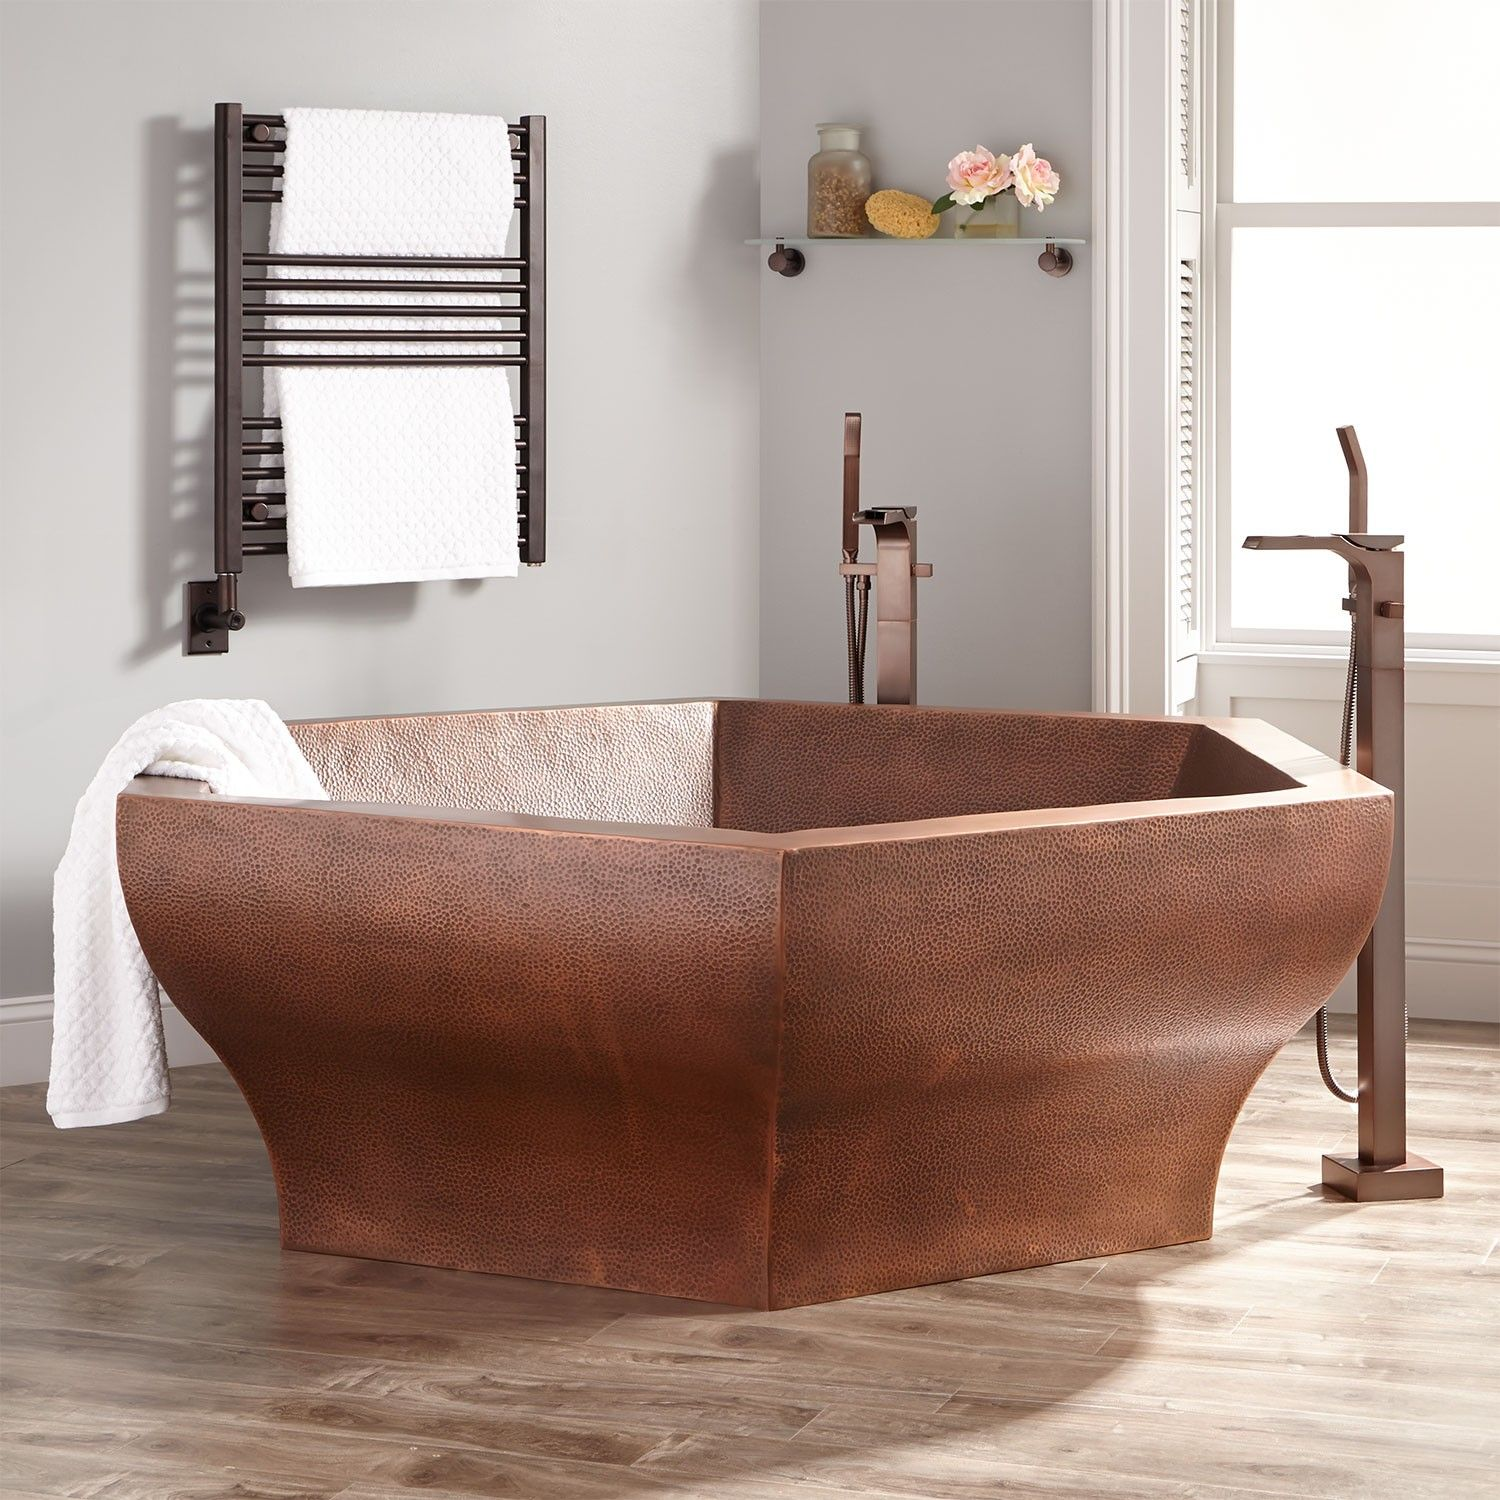 73 riley hexagon hammered copper two person soaking tub for Salmon bathroom ideas